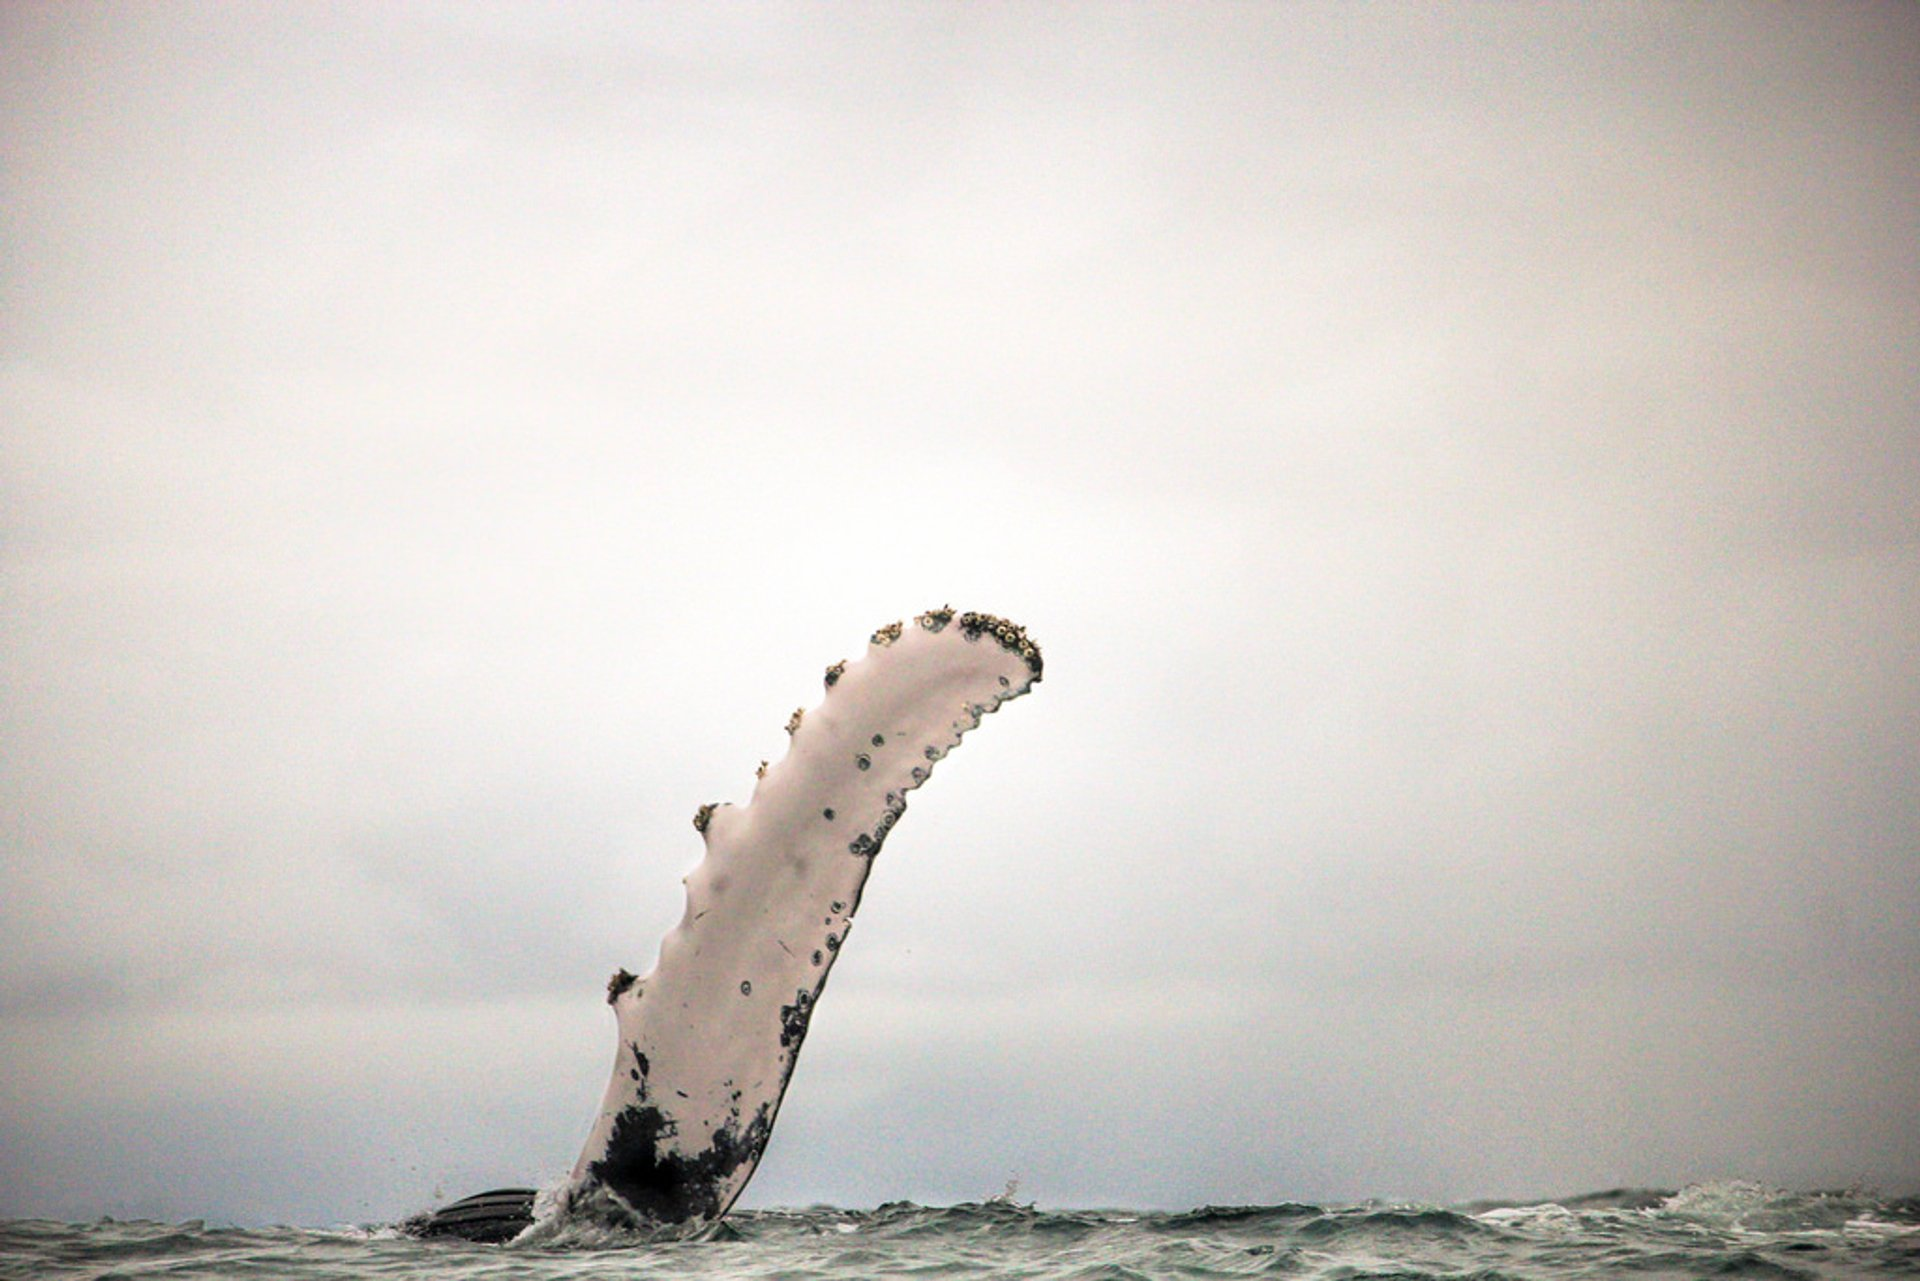 Best time for Humpback Whales in Colombia 2020